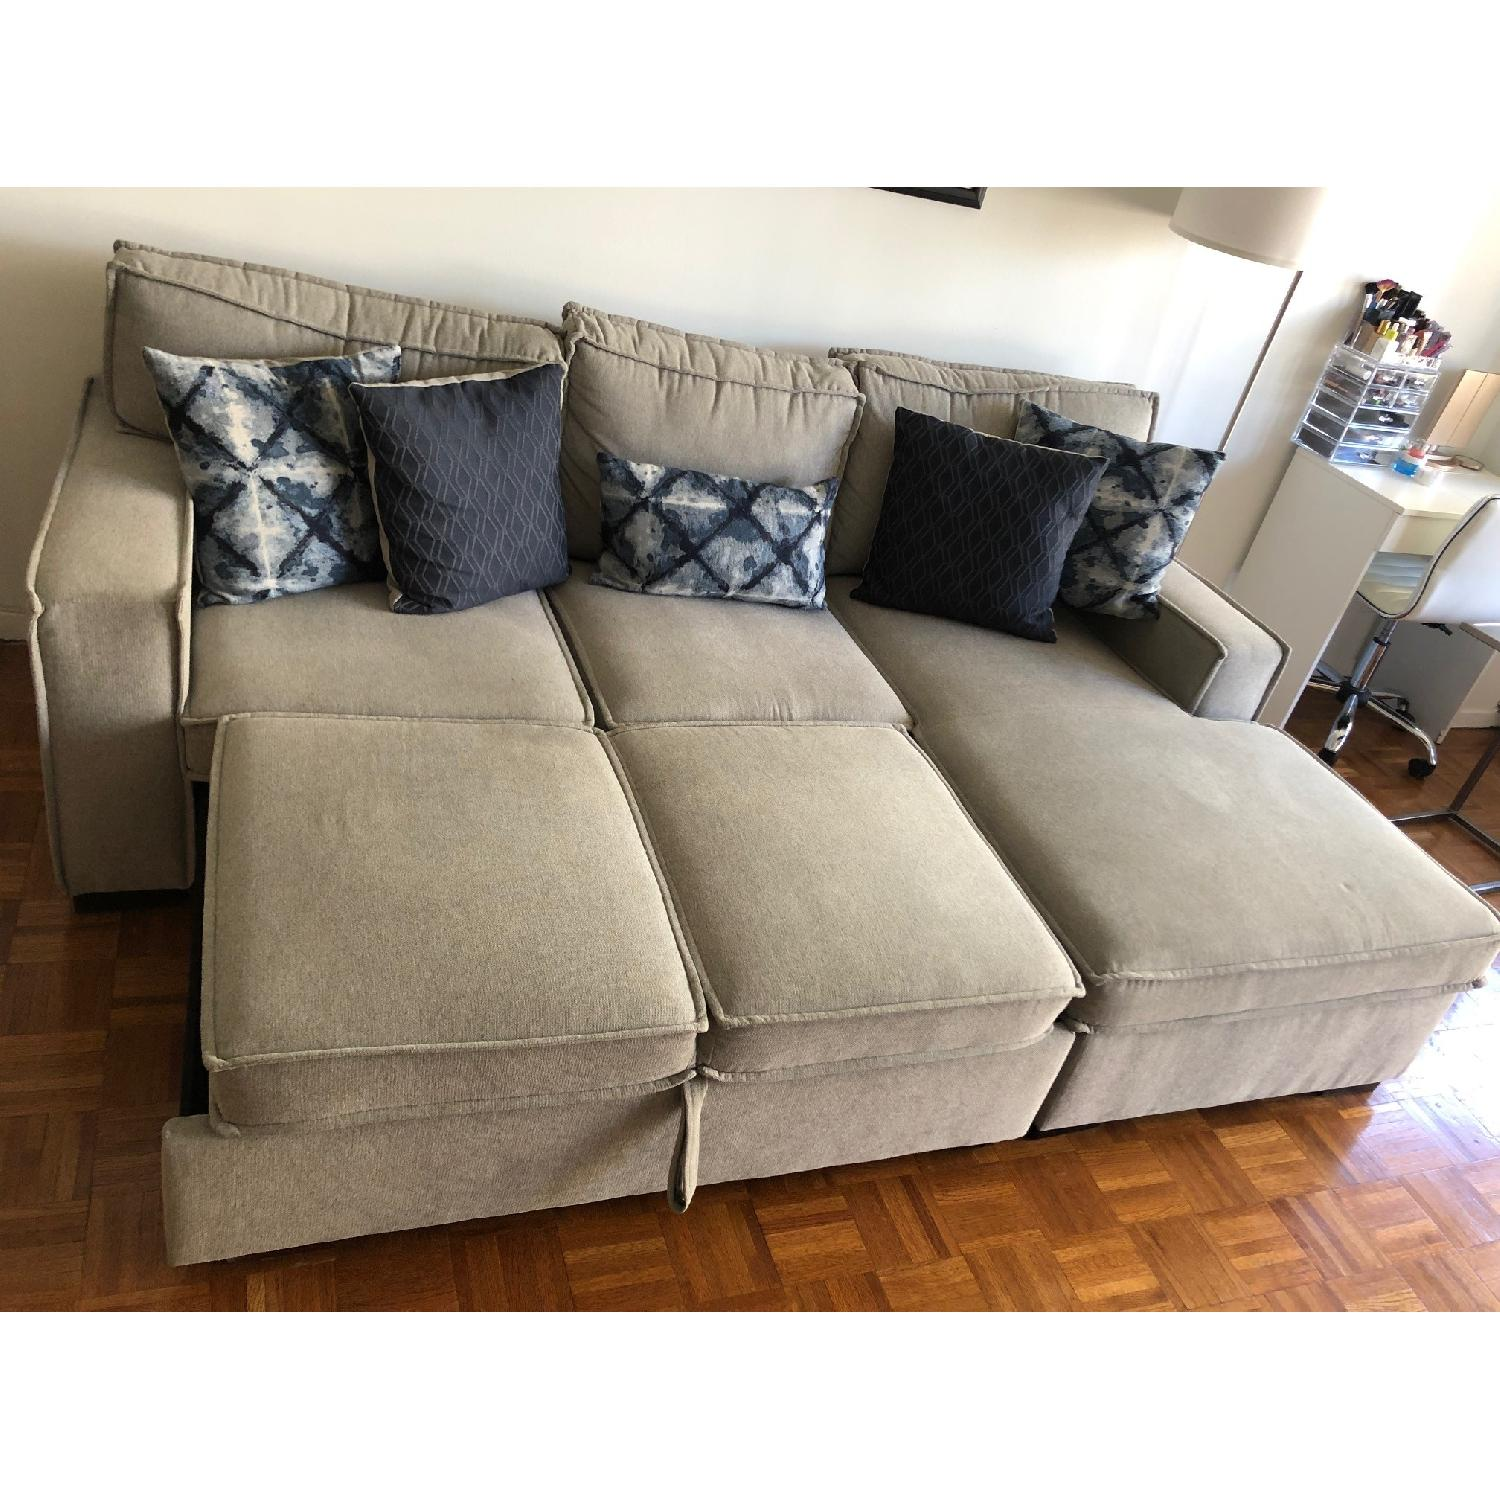 Bob's Playscape Gray Sectional Sofa-1